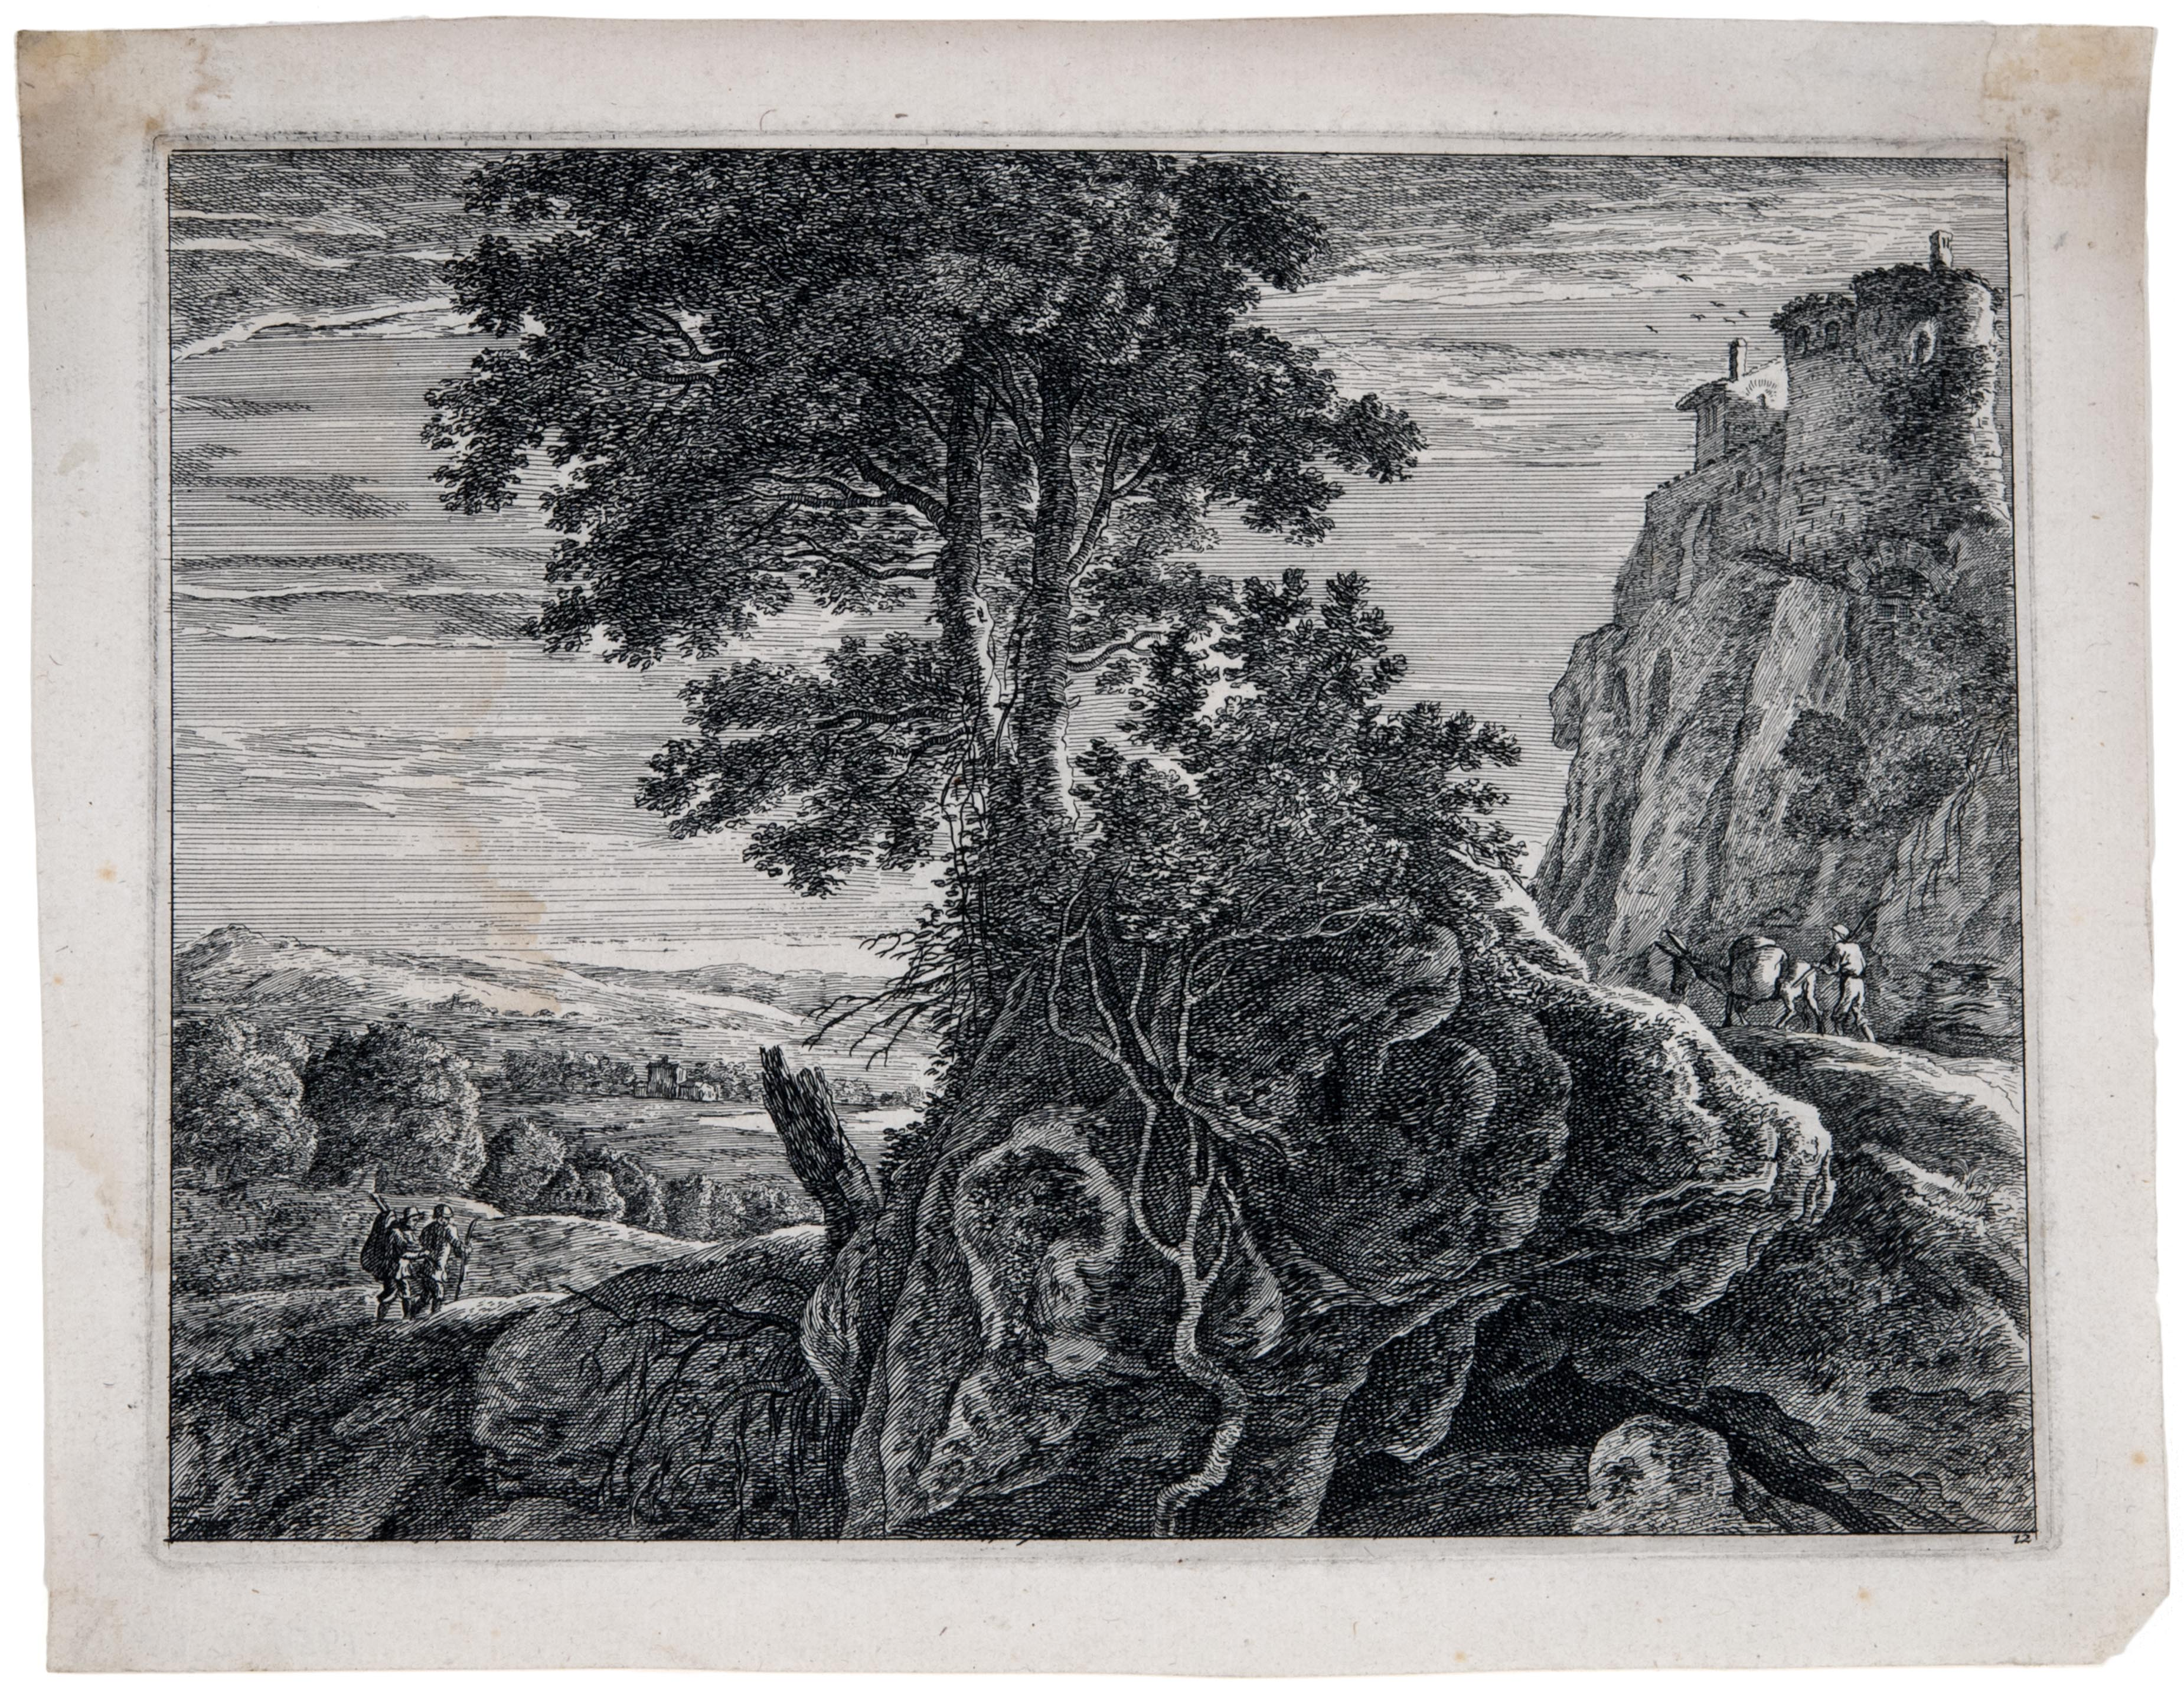 Anonymous, Landscape, 18th century